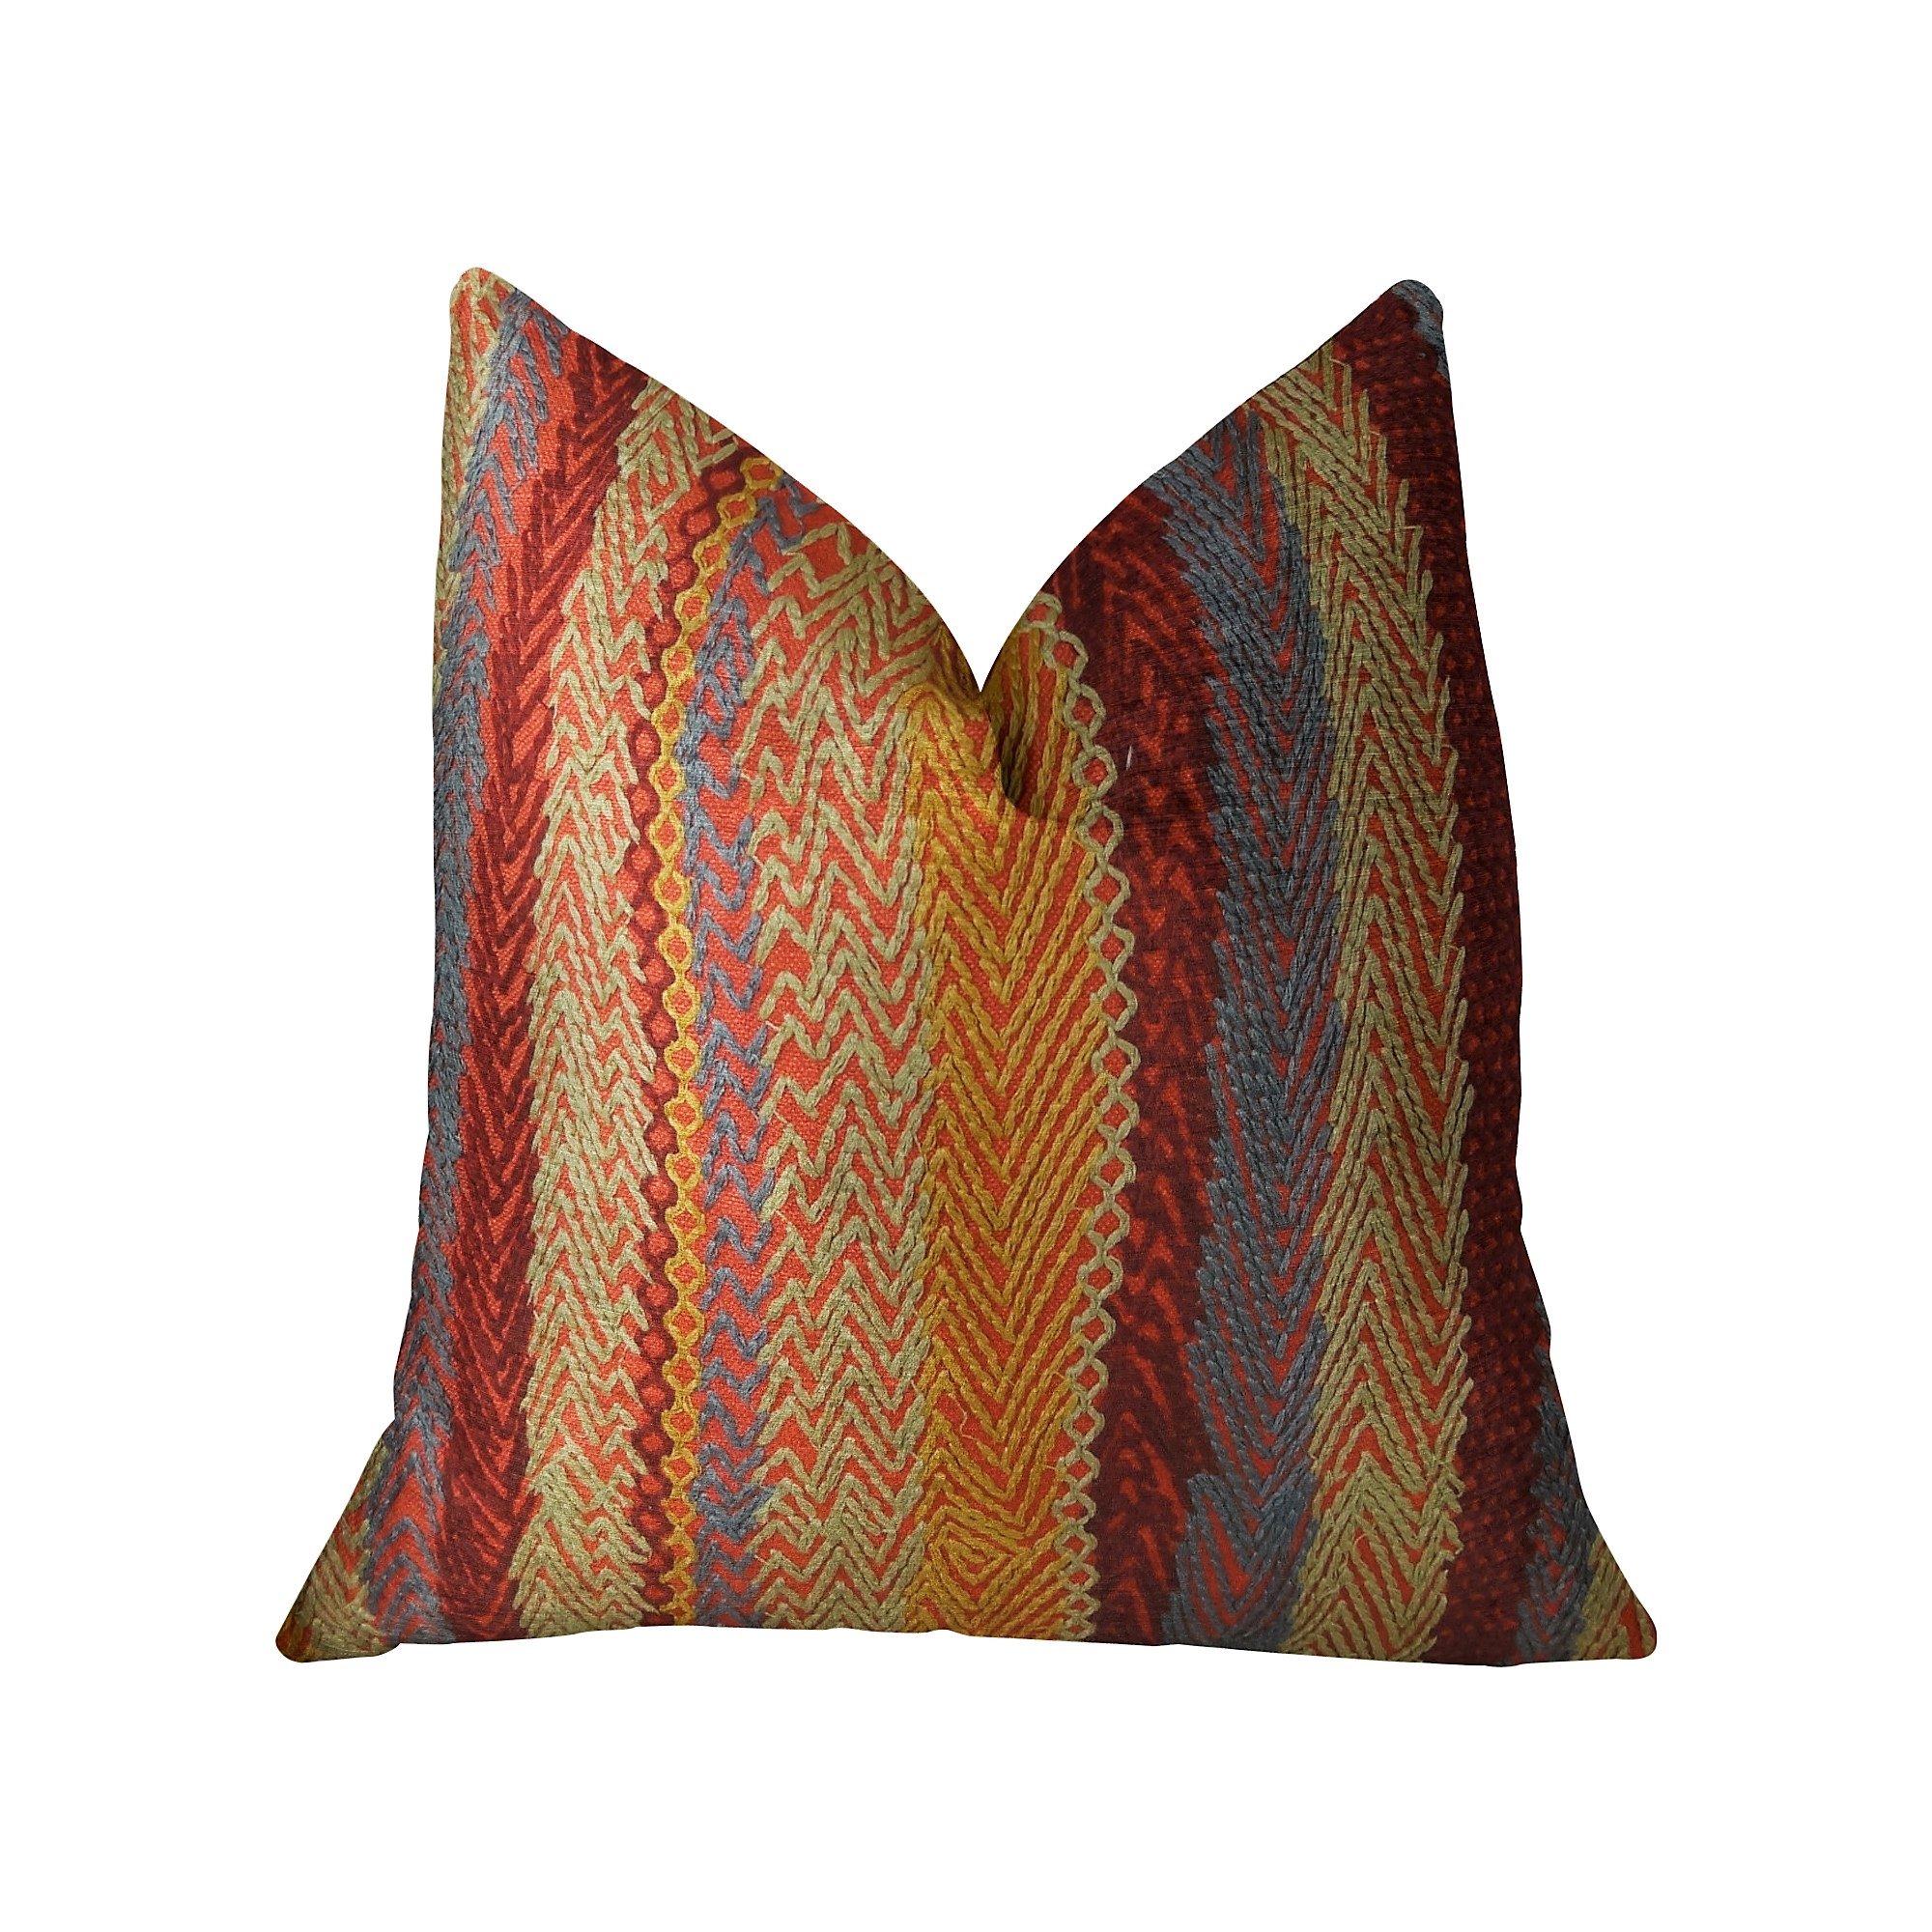 Plutus Red Earth Handmade Throw Pillow, Double Sided